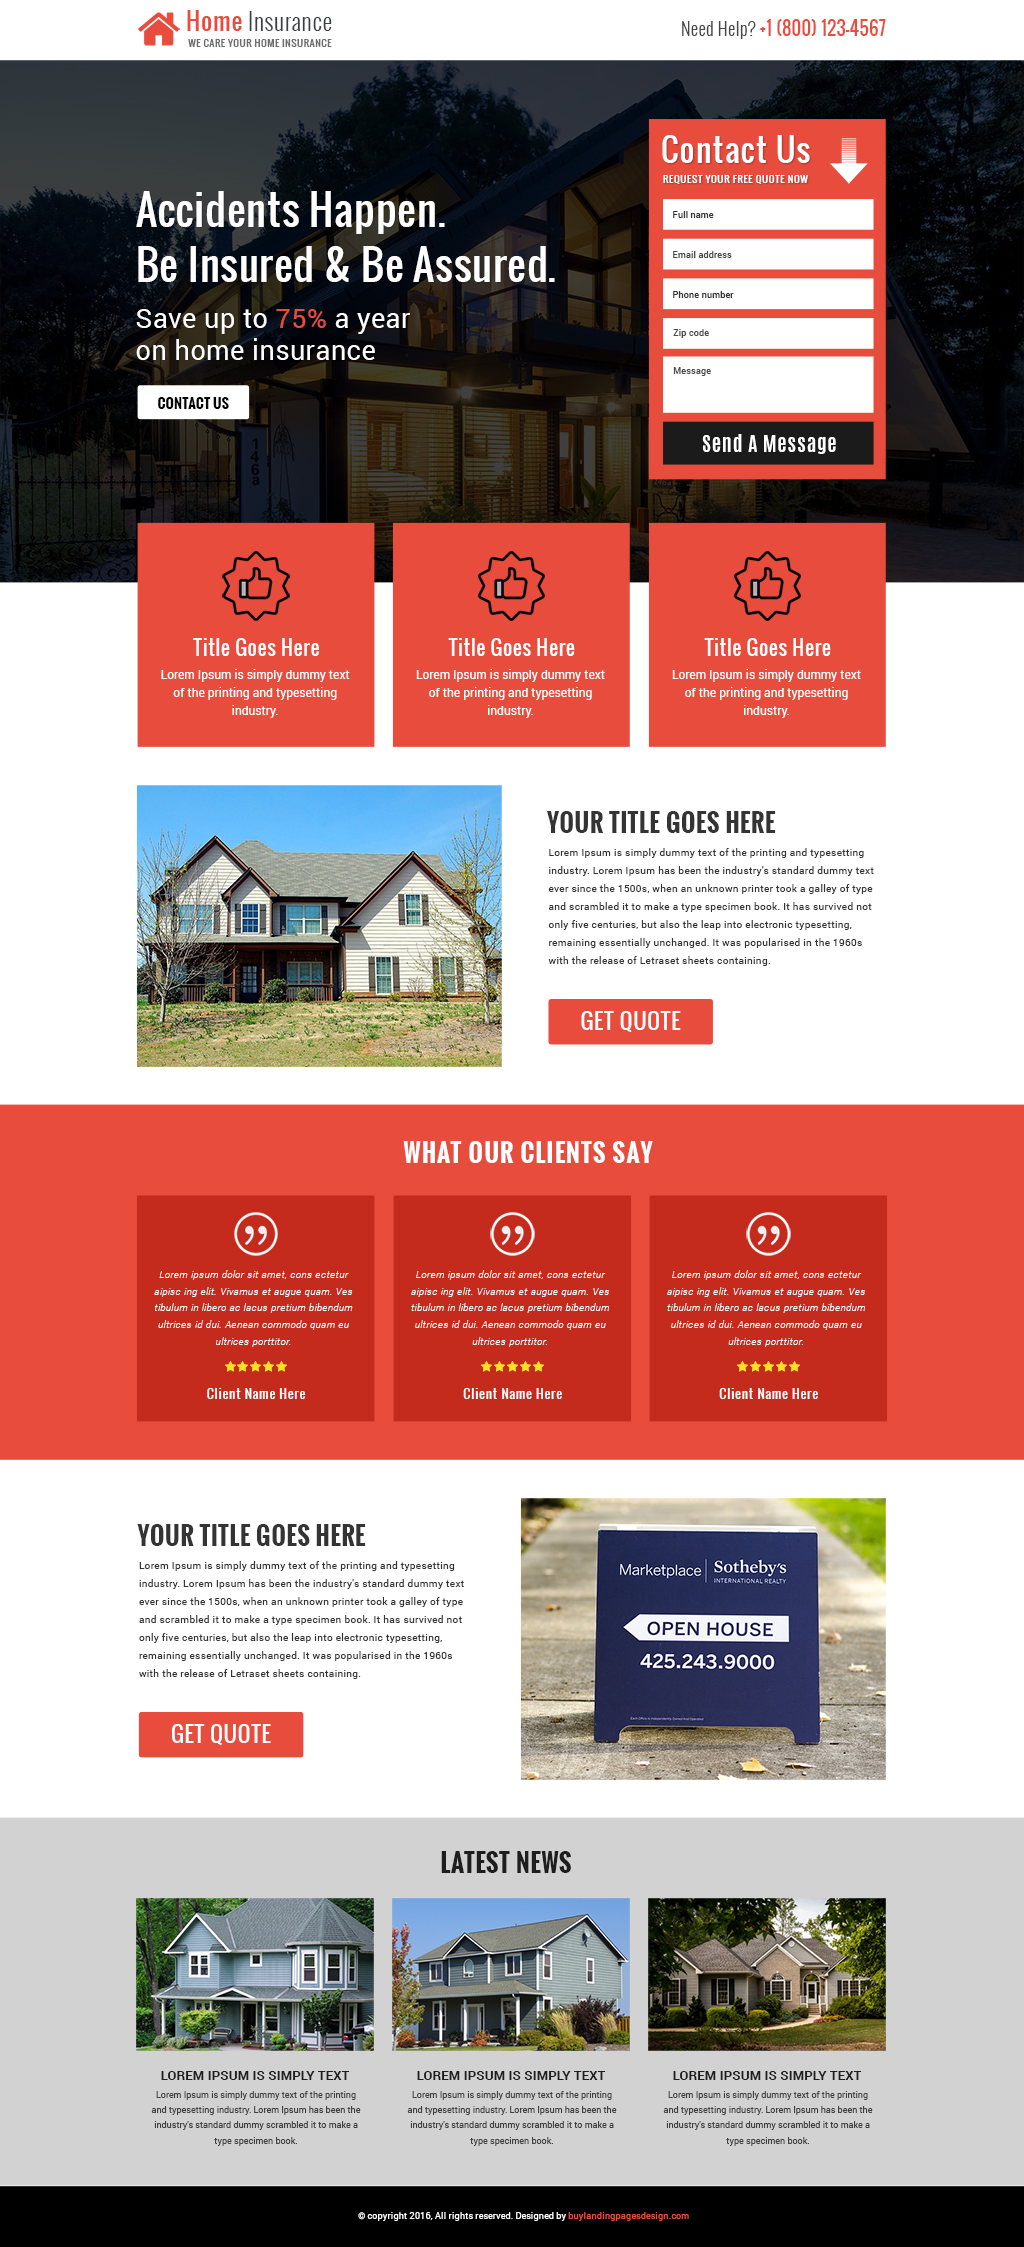 Responsive home insurance service landing page design template